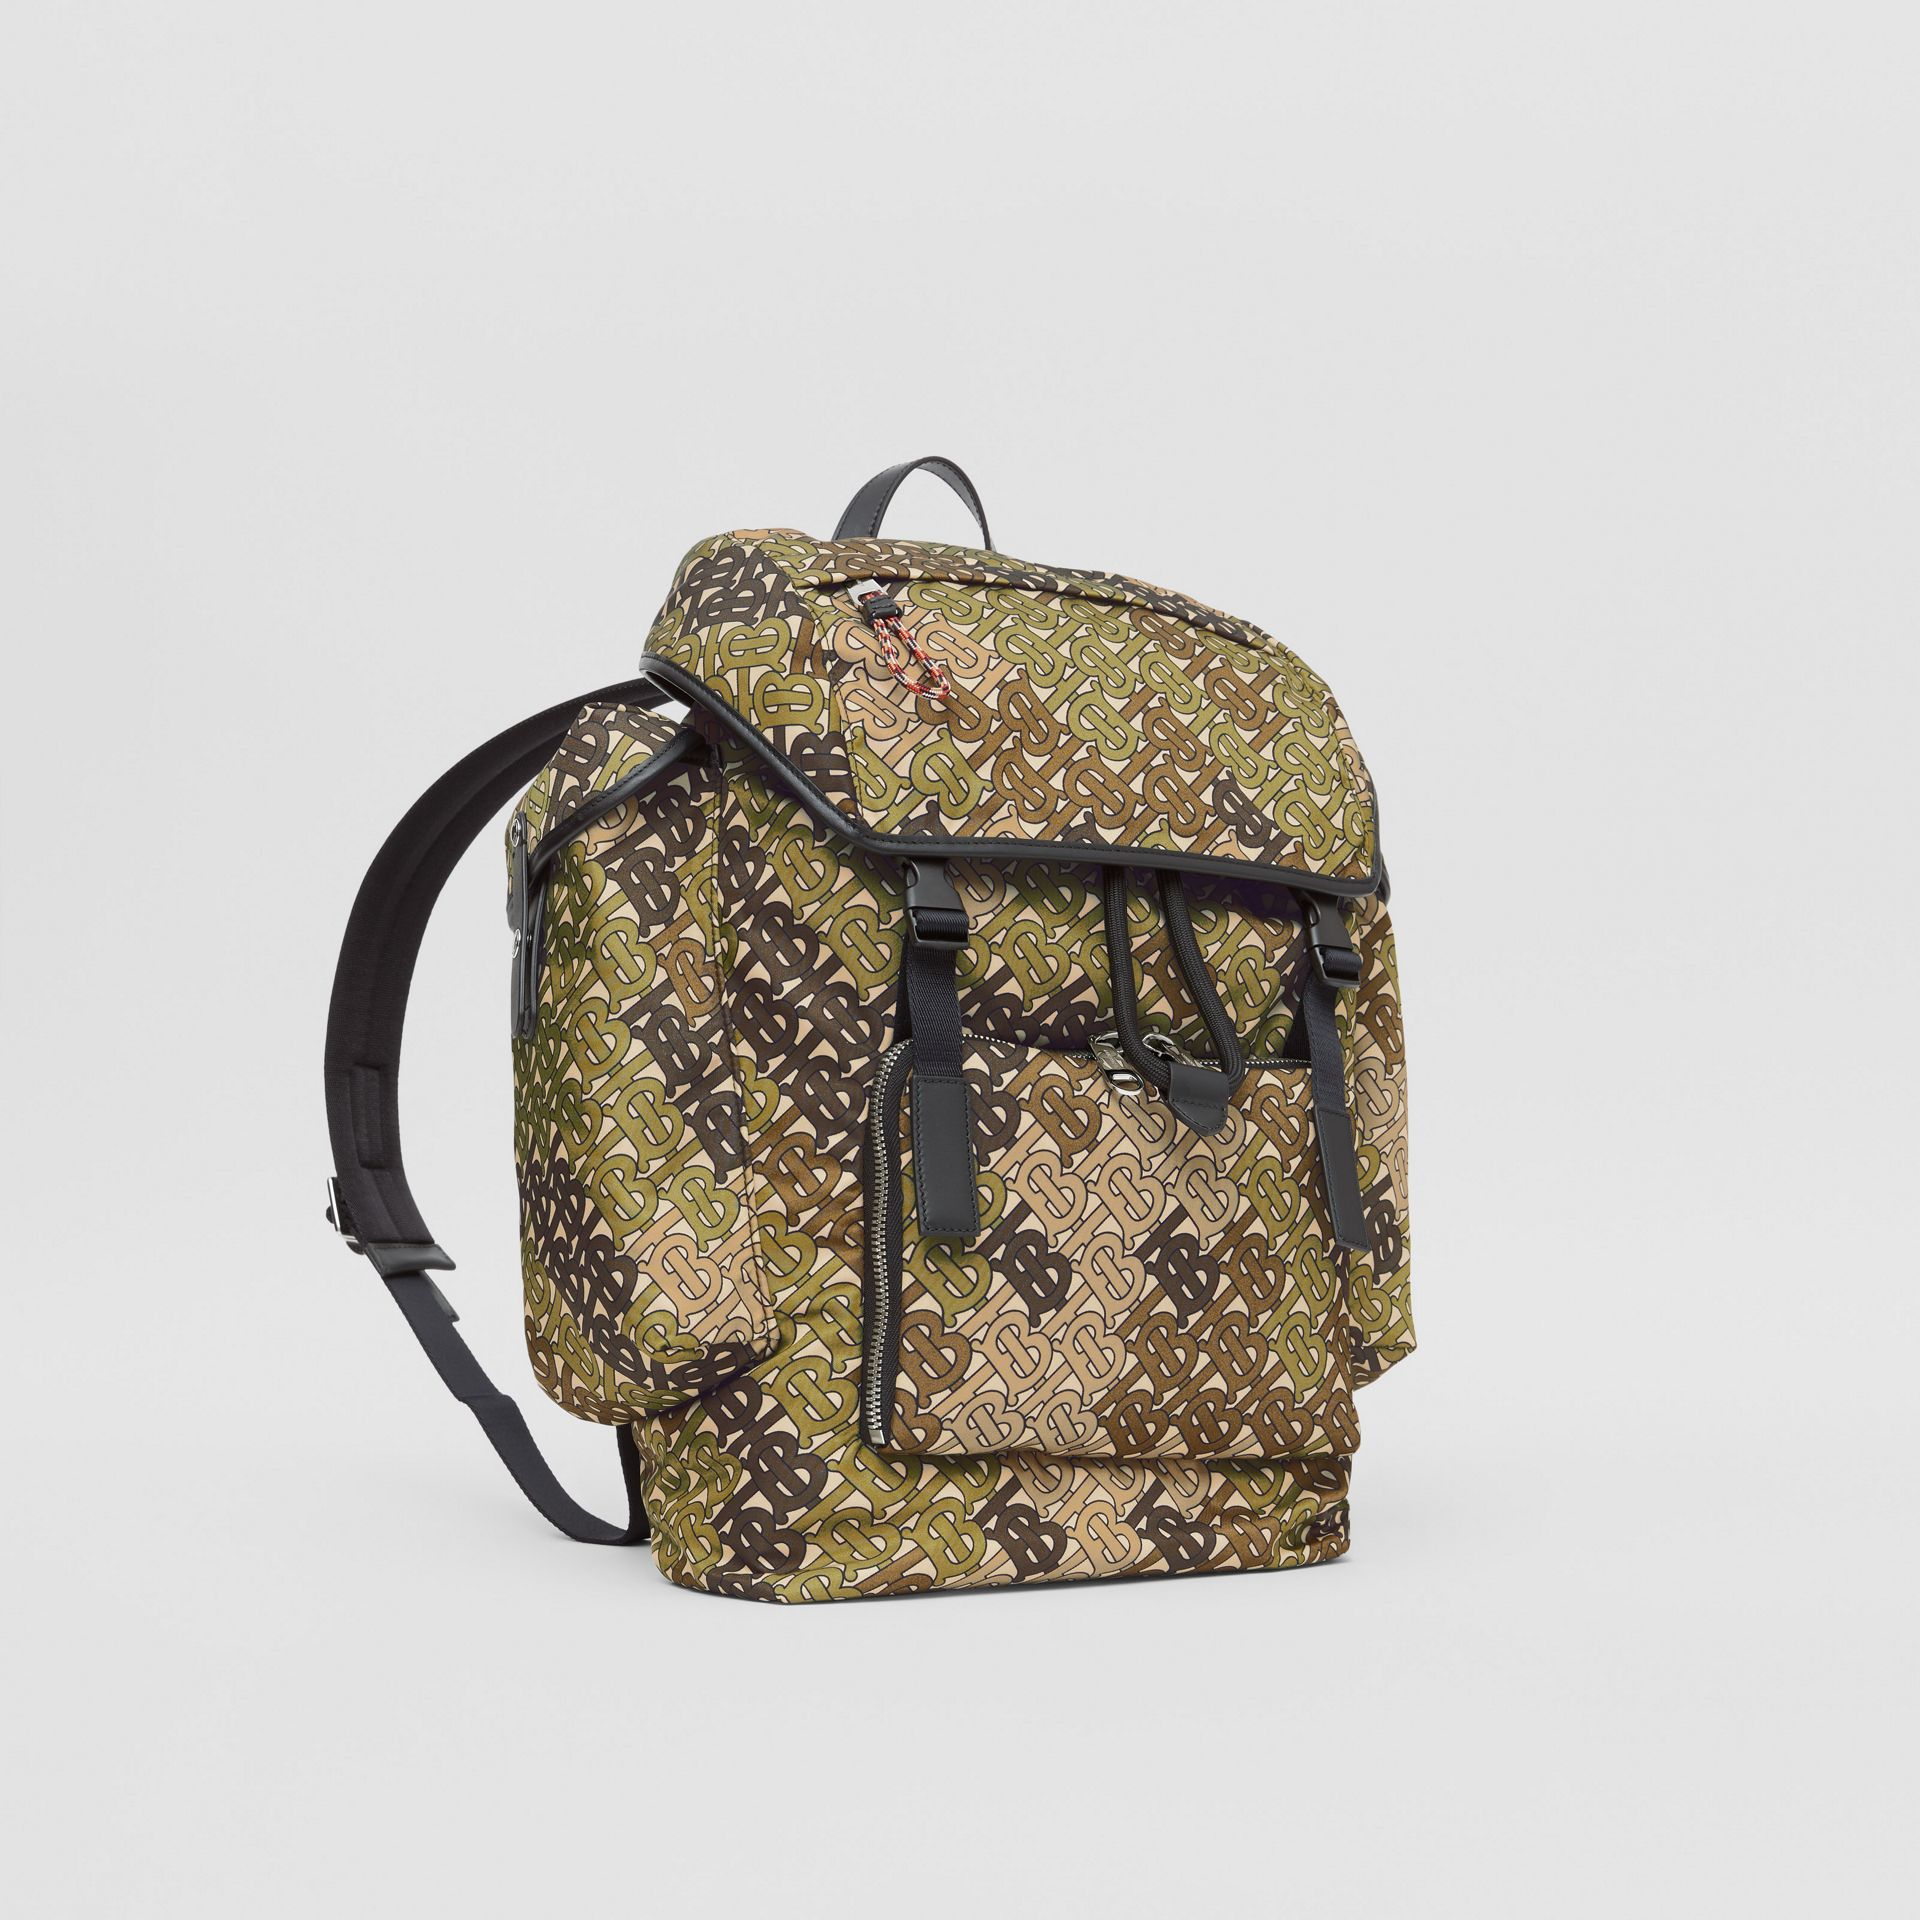 Medium Monogram Print Nylon Backpack in Khaki Green - Men | Burberry - gallery image 6